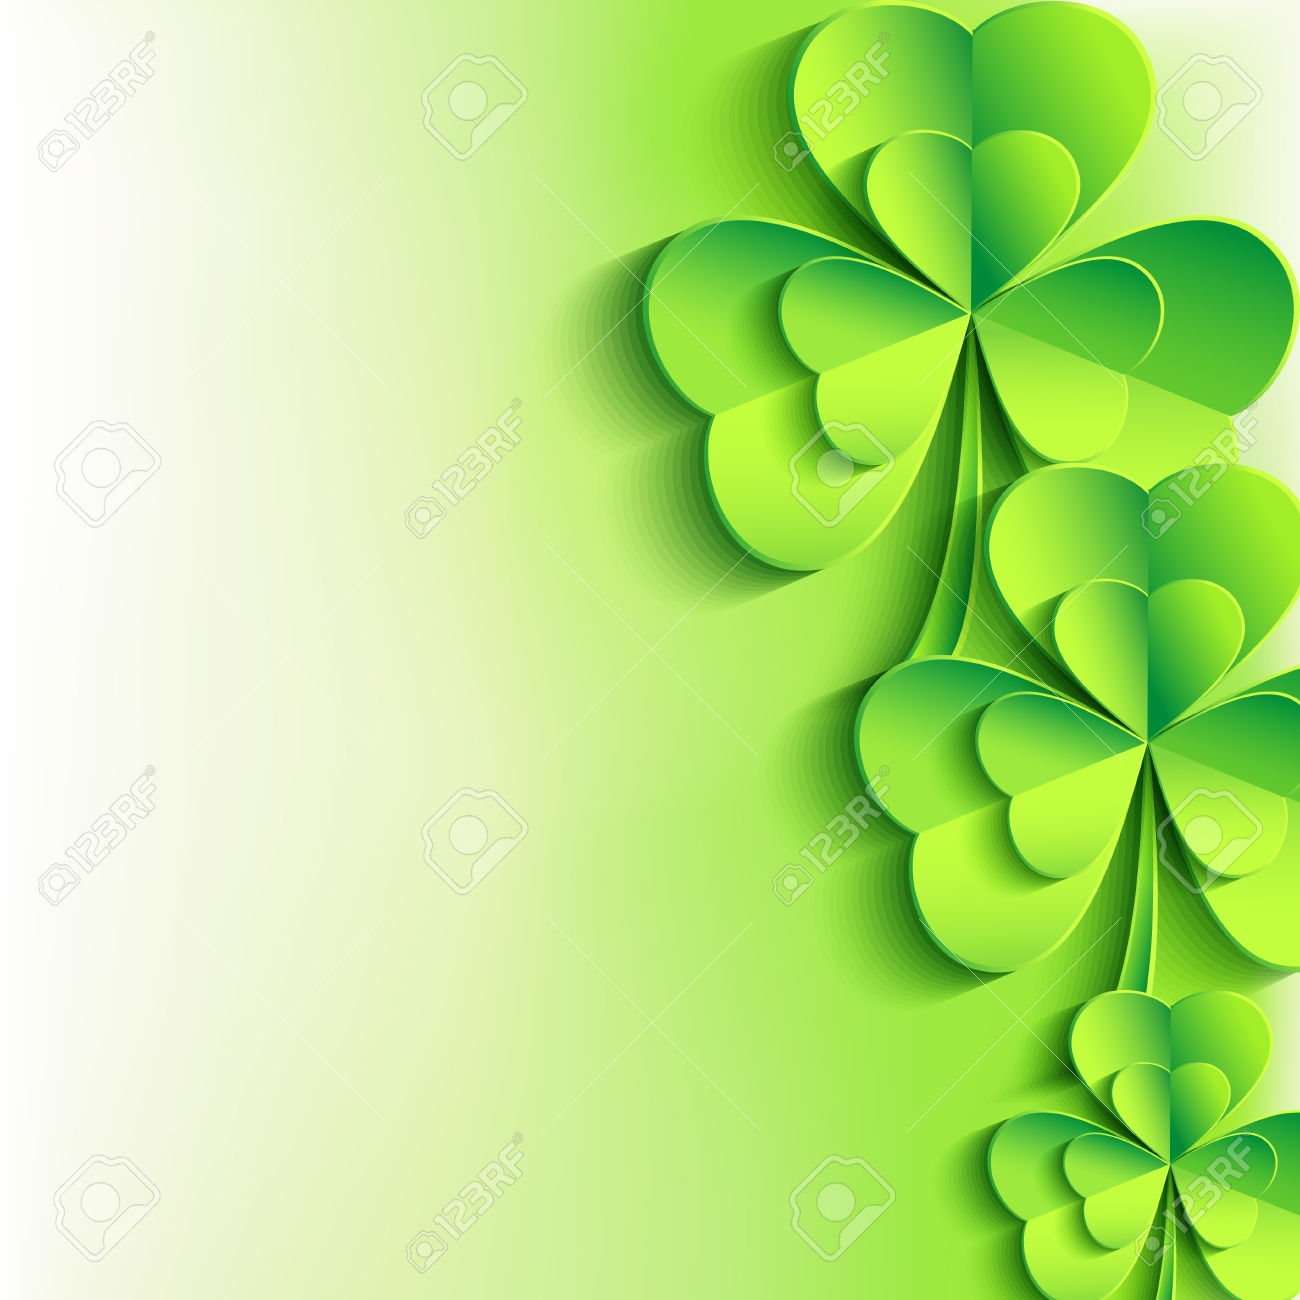 St Patricks Day Wallpapers Backgrounds for My PC 1300x1300